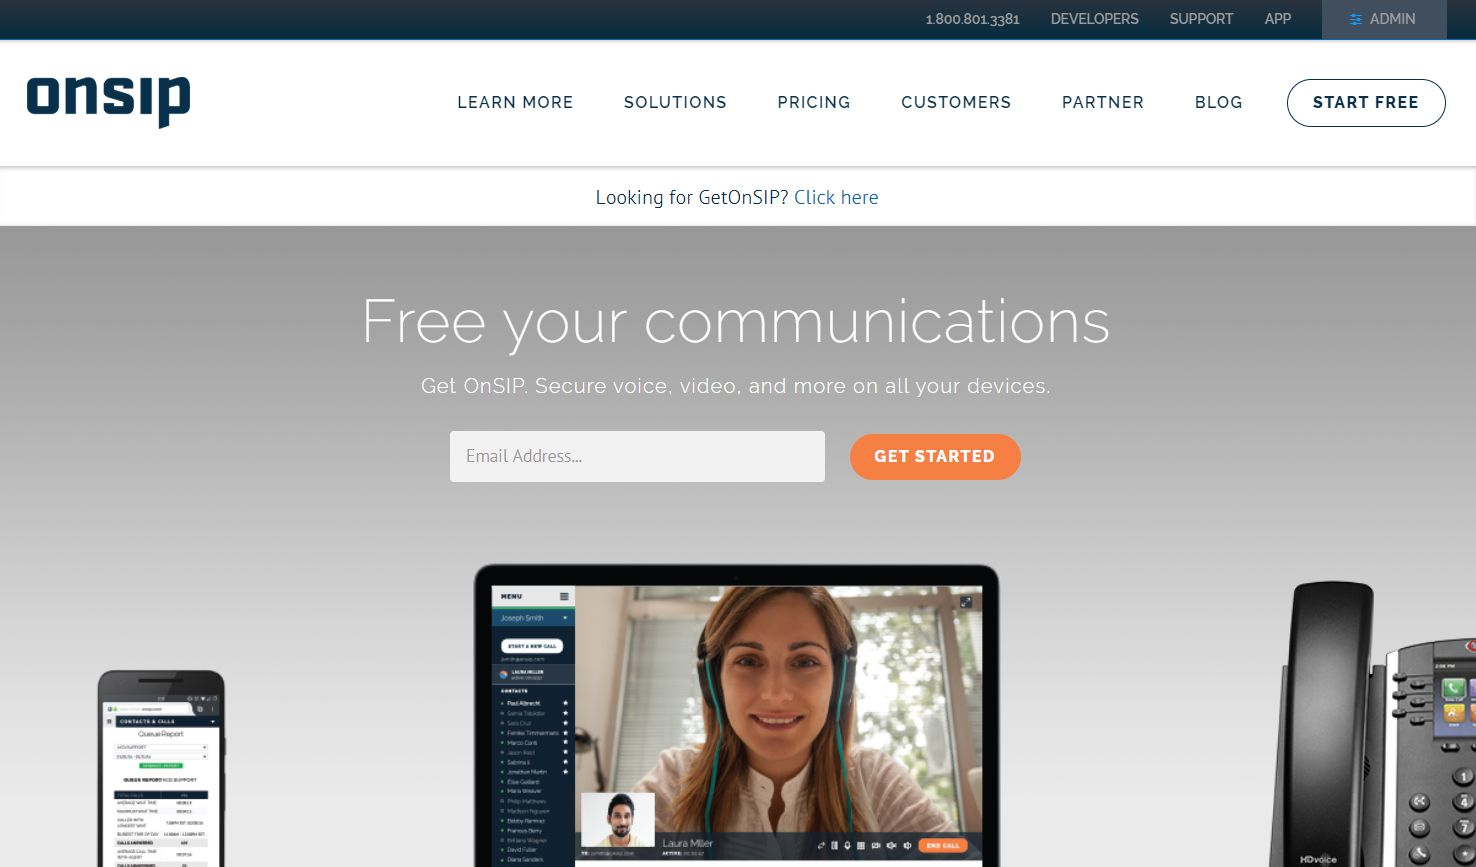 Sip Service Providers That Offer Free Accounts Telecom Tips Wiring Your Home For Voip Onsip Is A Paid Offered By Junction Networks However The Company Also Offers Plan To People Who Want Create